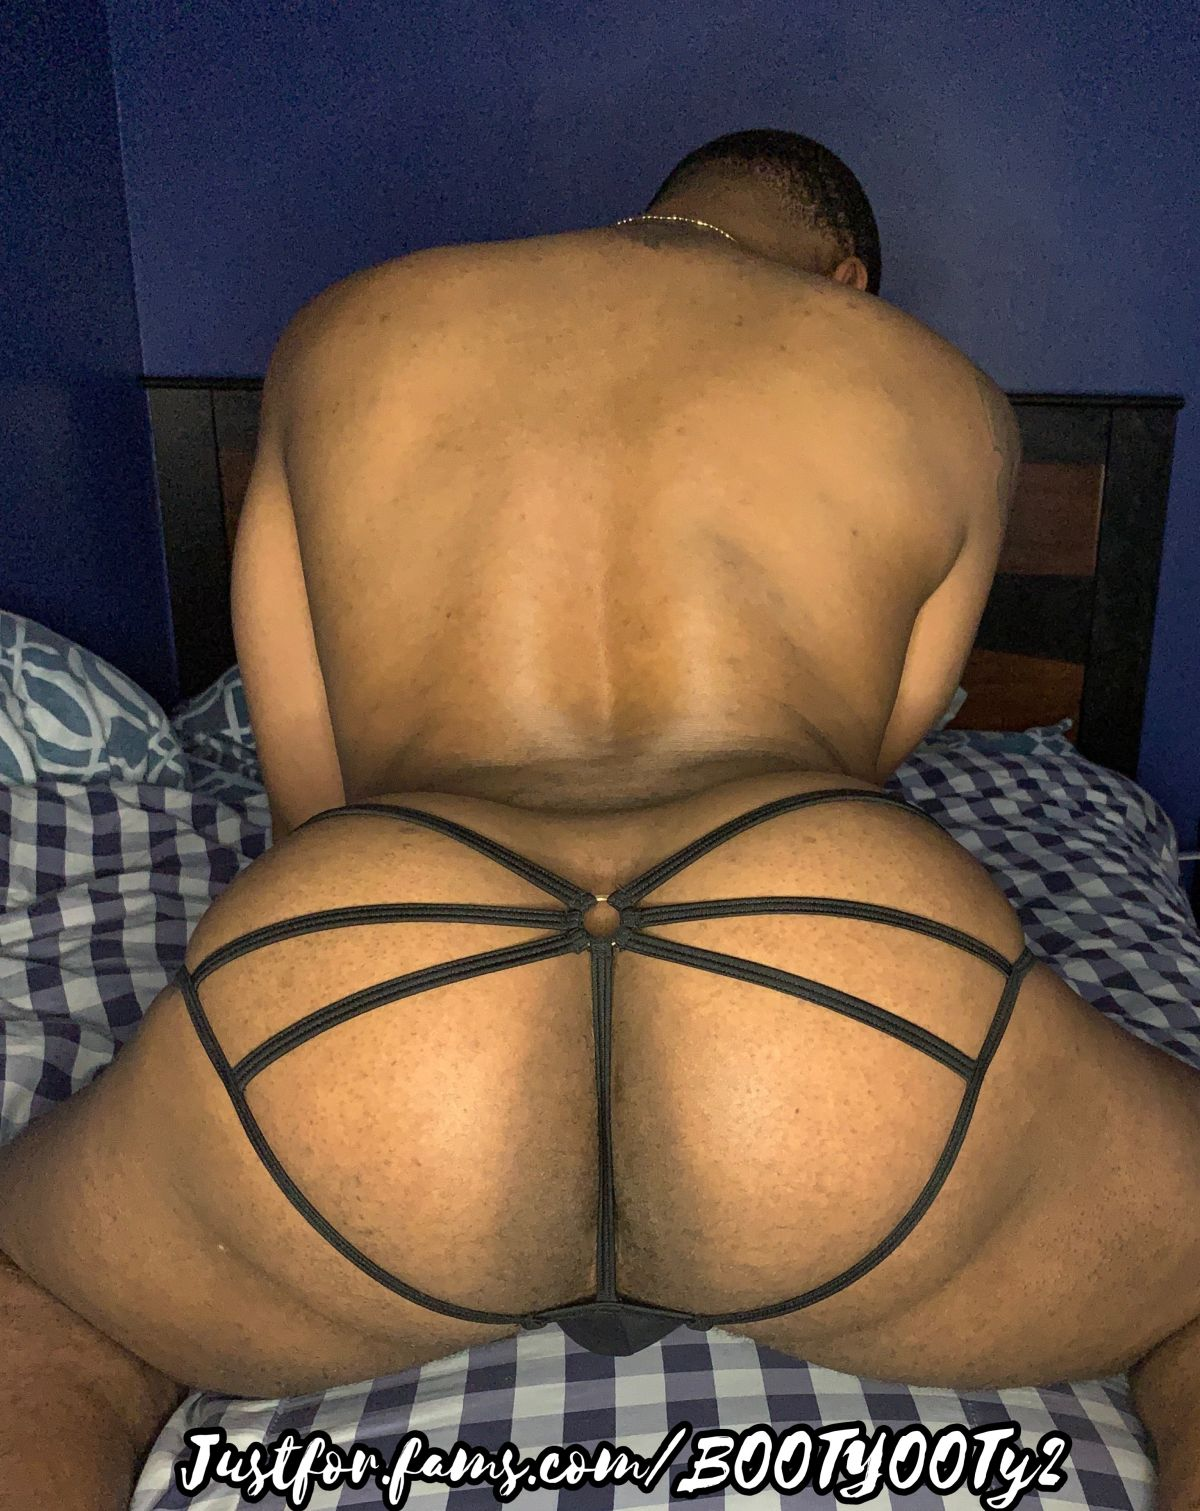 Twitter: BOOTY00TY2 with 2 Zeros onlyfans leaked onlyfans leaked